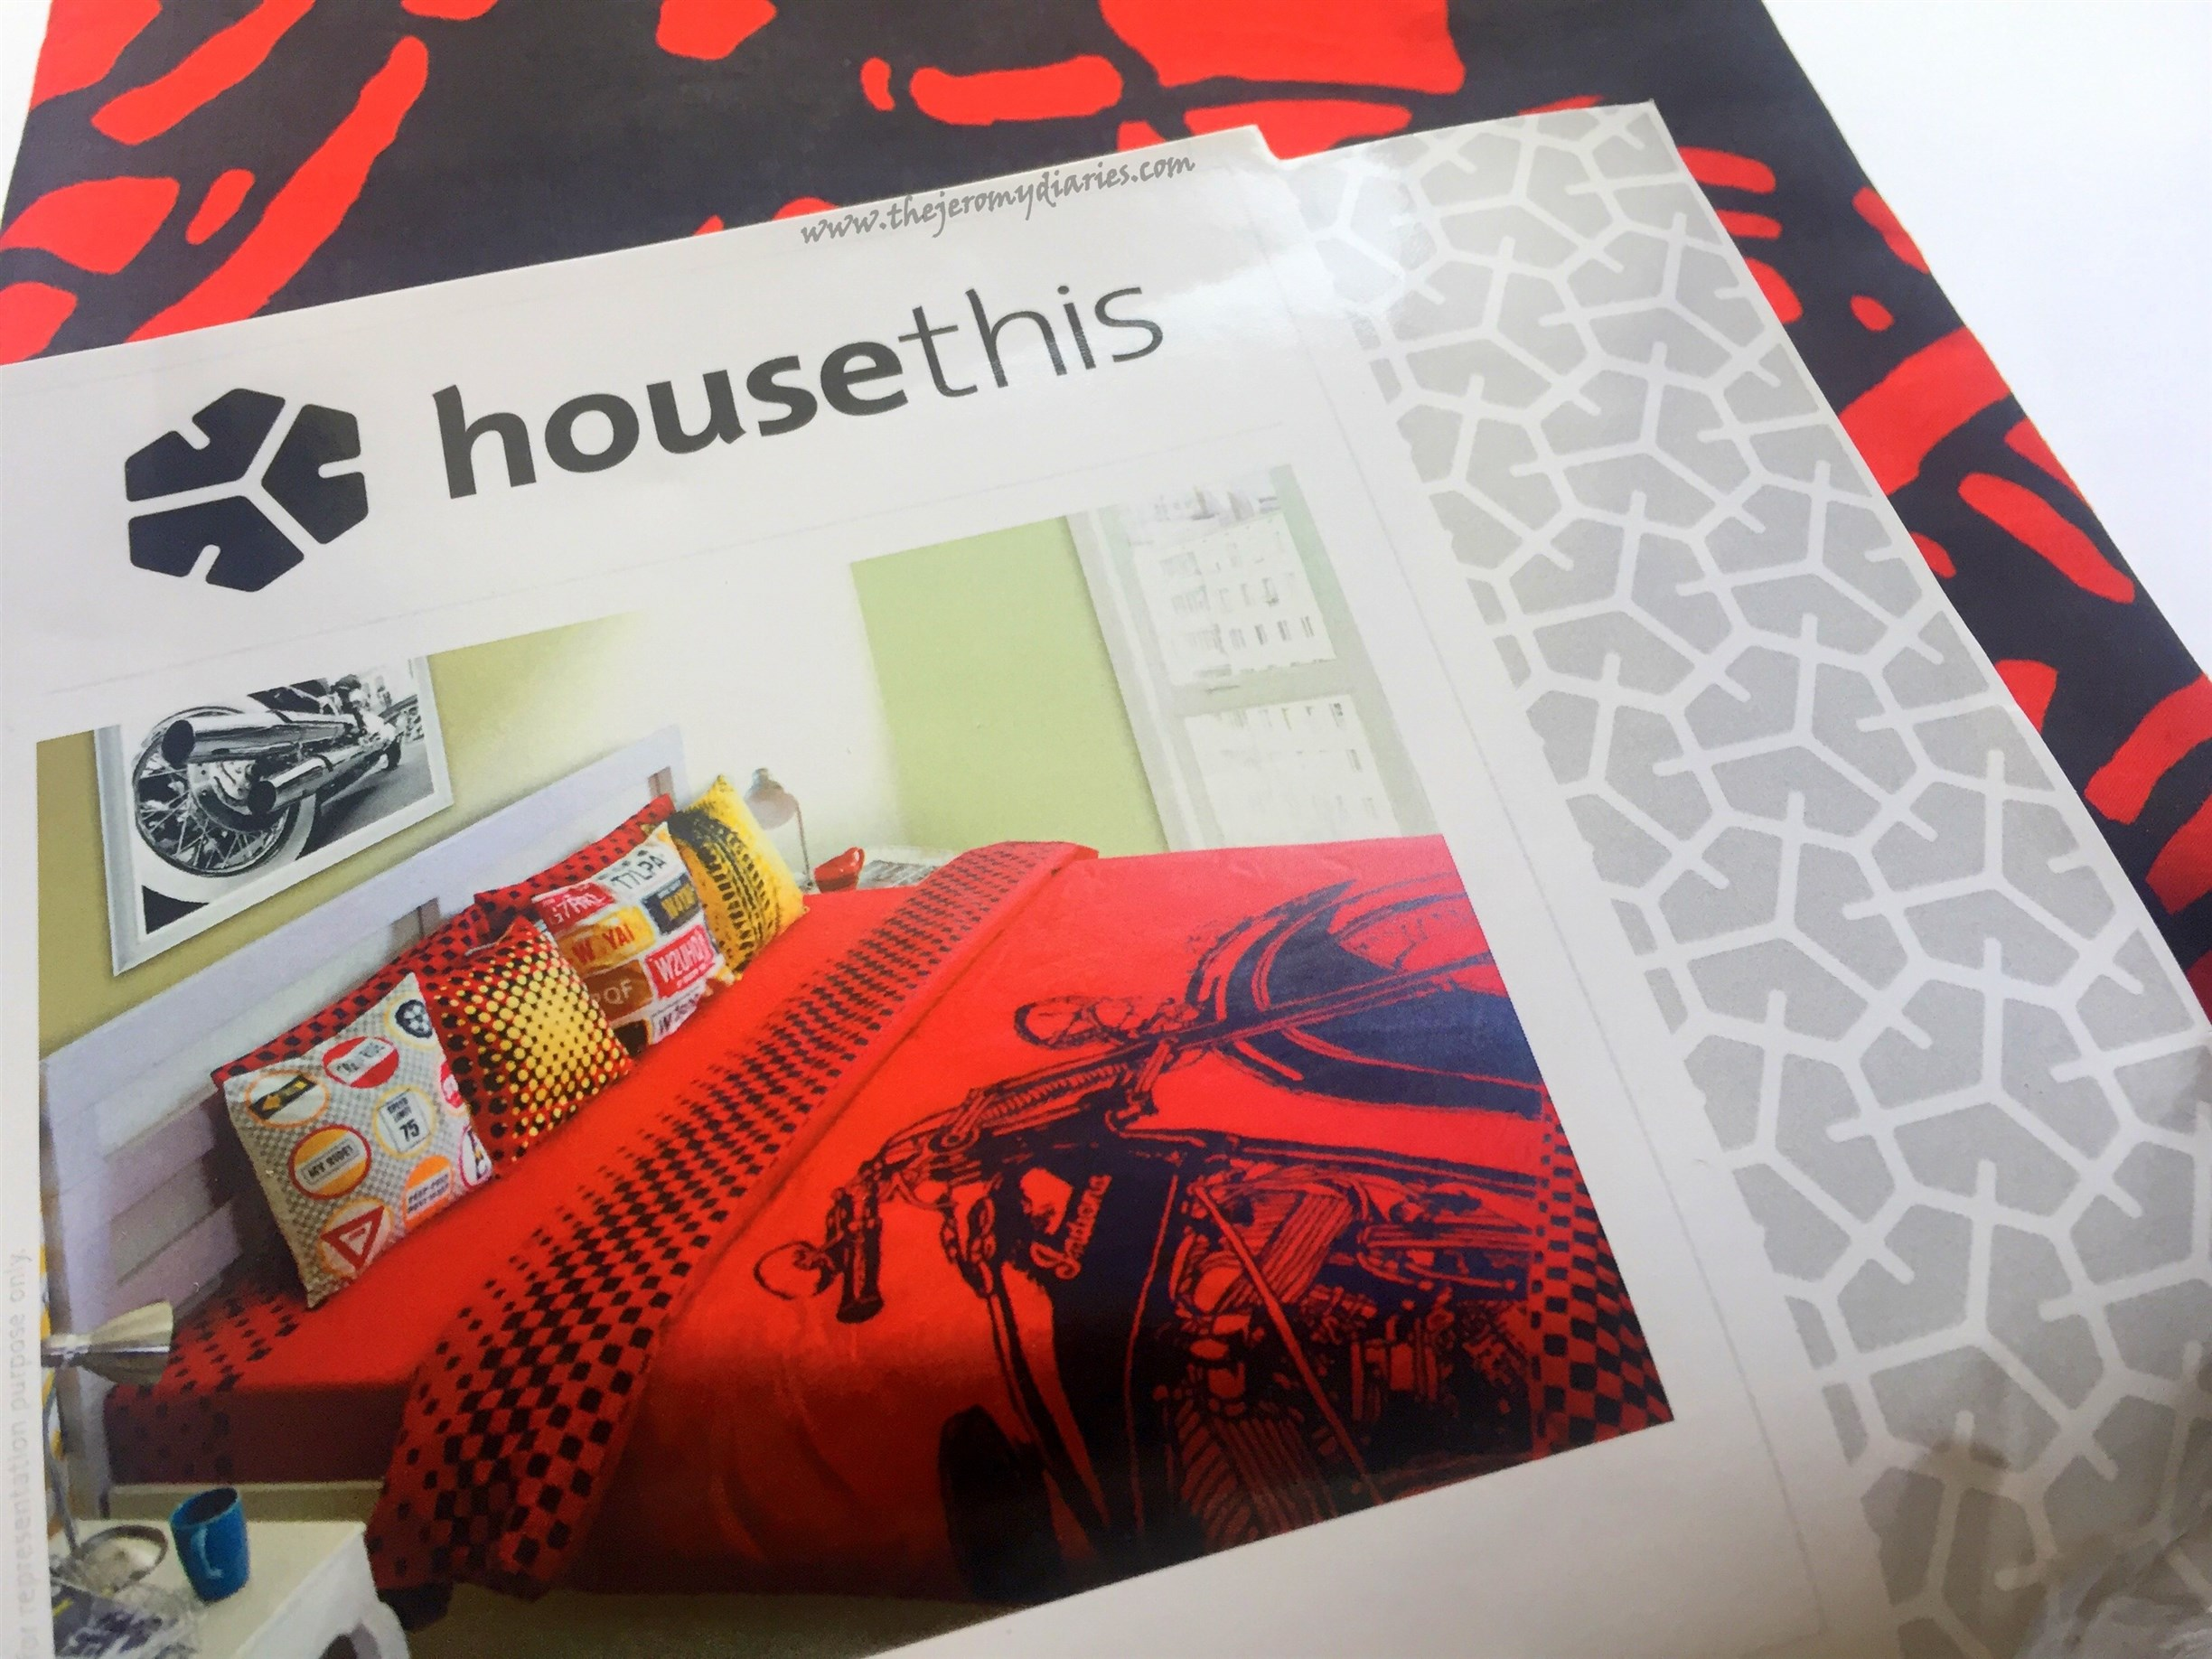 house this bedspread jabong collaboration the jeromy diaries (2448 x 1836)